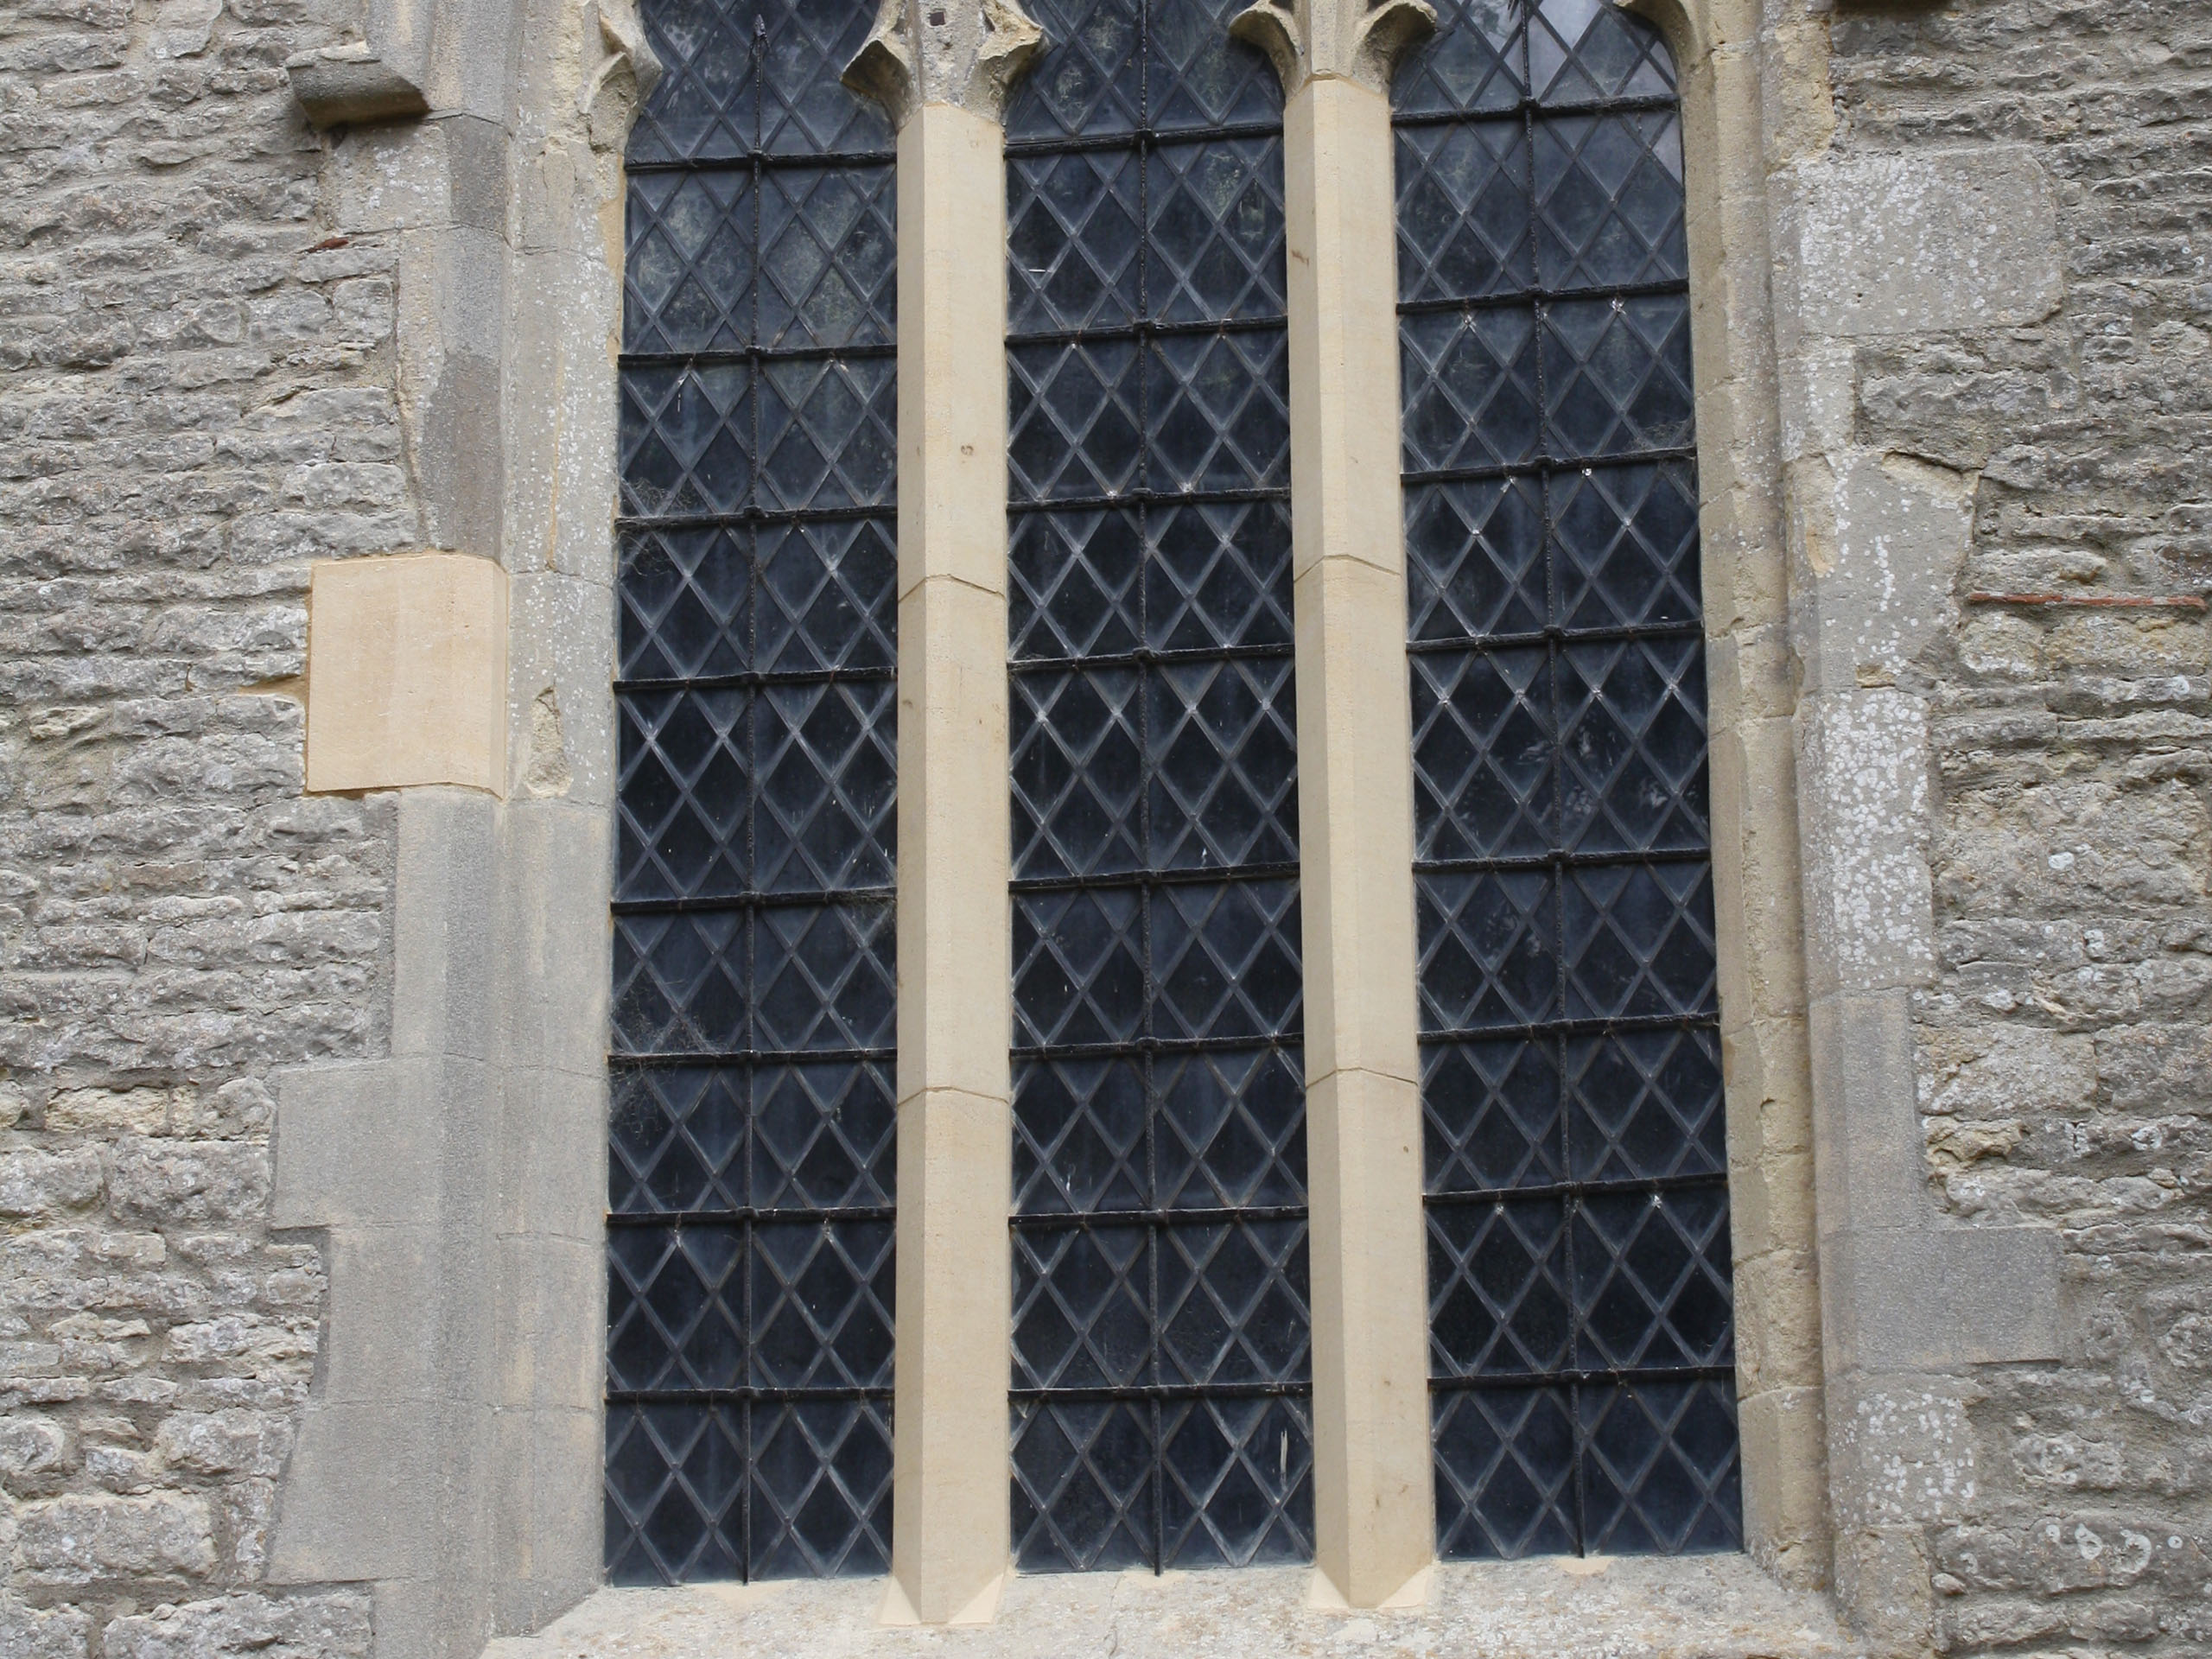 St Catherine's Church, Towersey, Oxfordshire Image 13